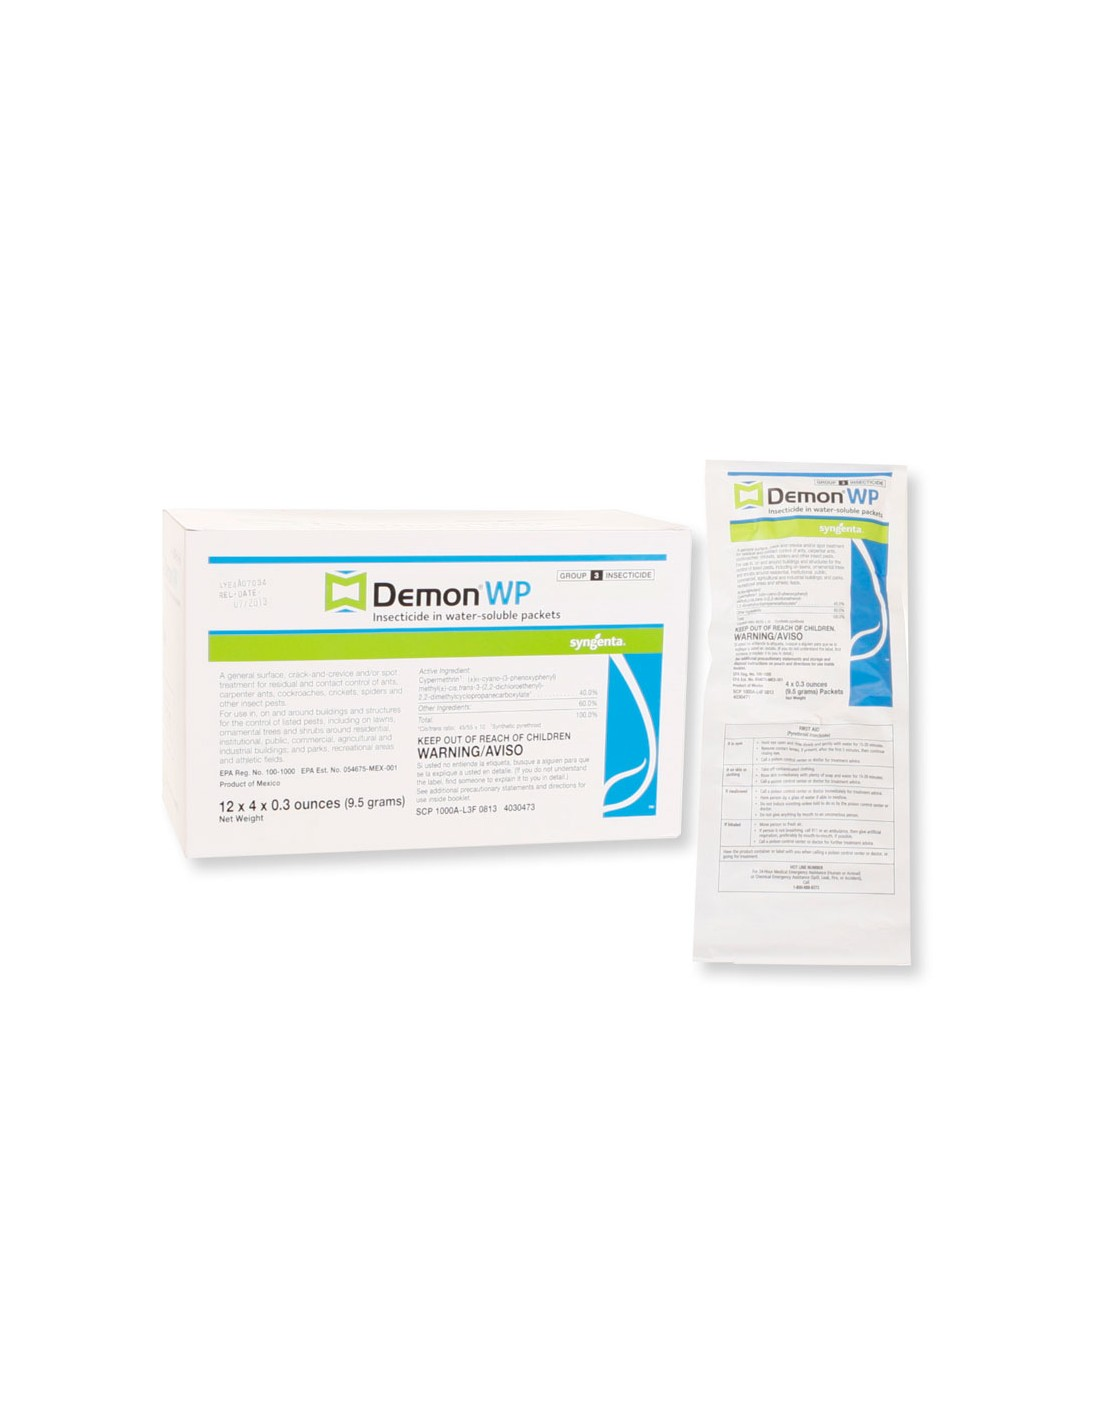 After demon wp has been applied and dried, is it harmful to pets if they eat the grass that it was sprayed on?